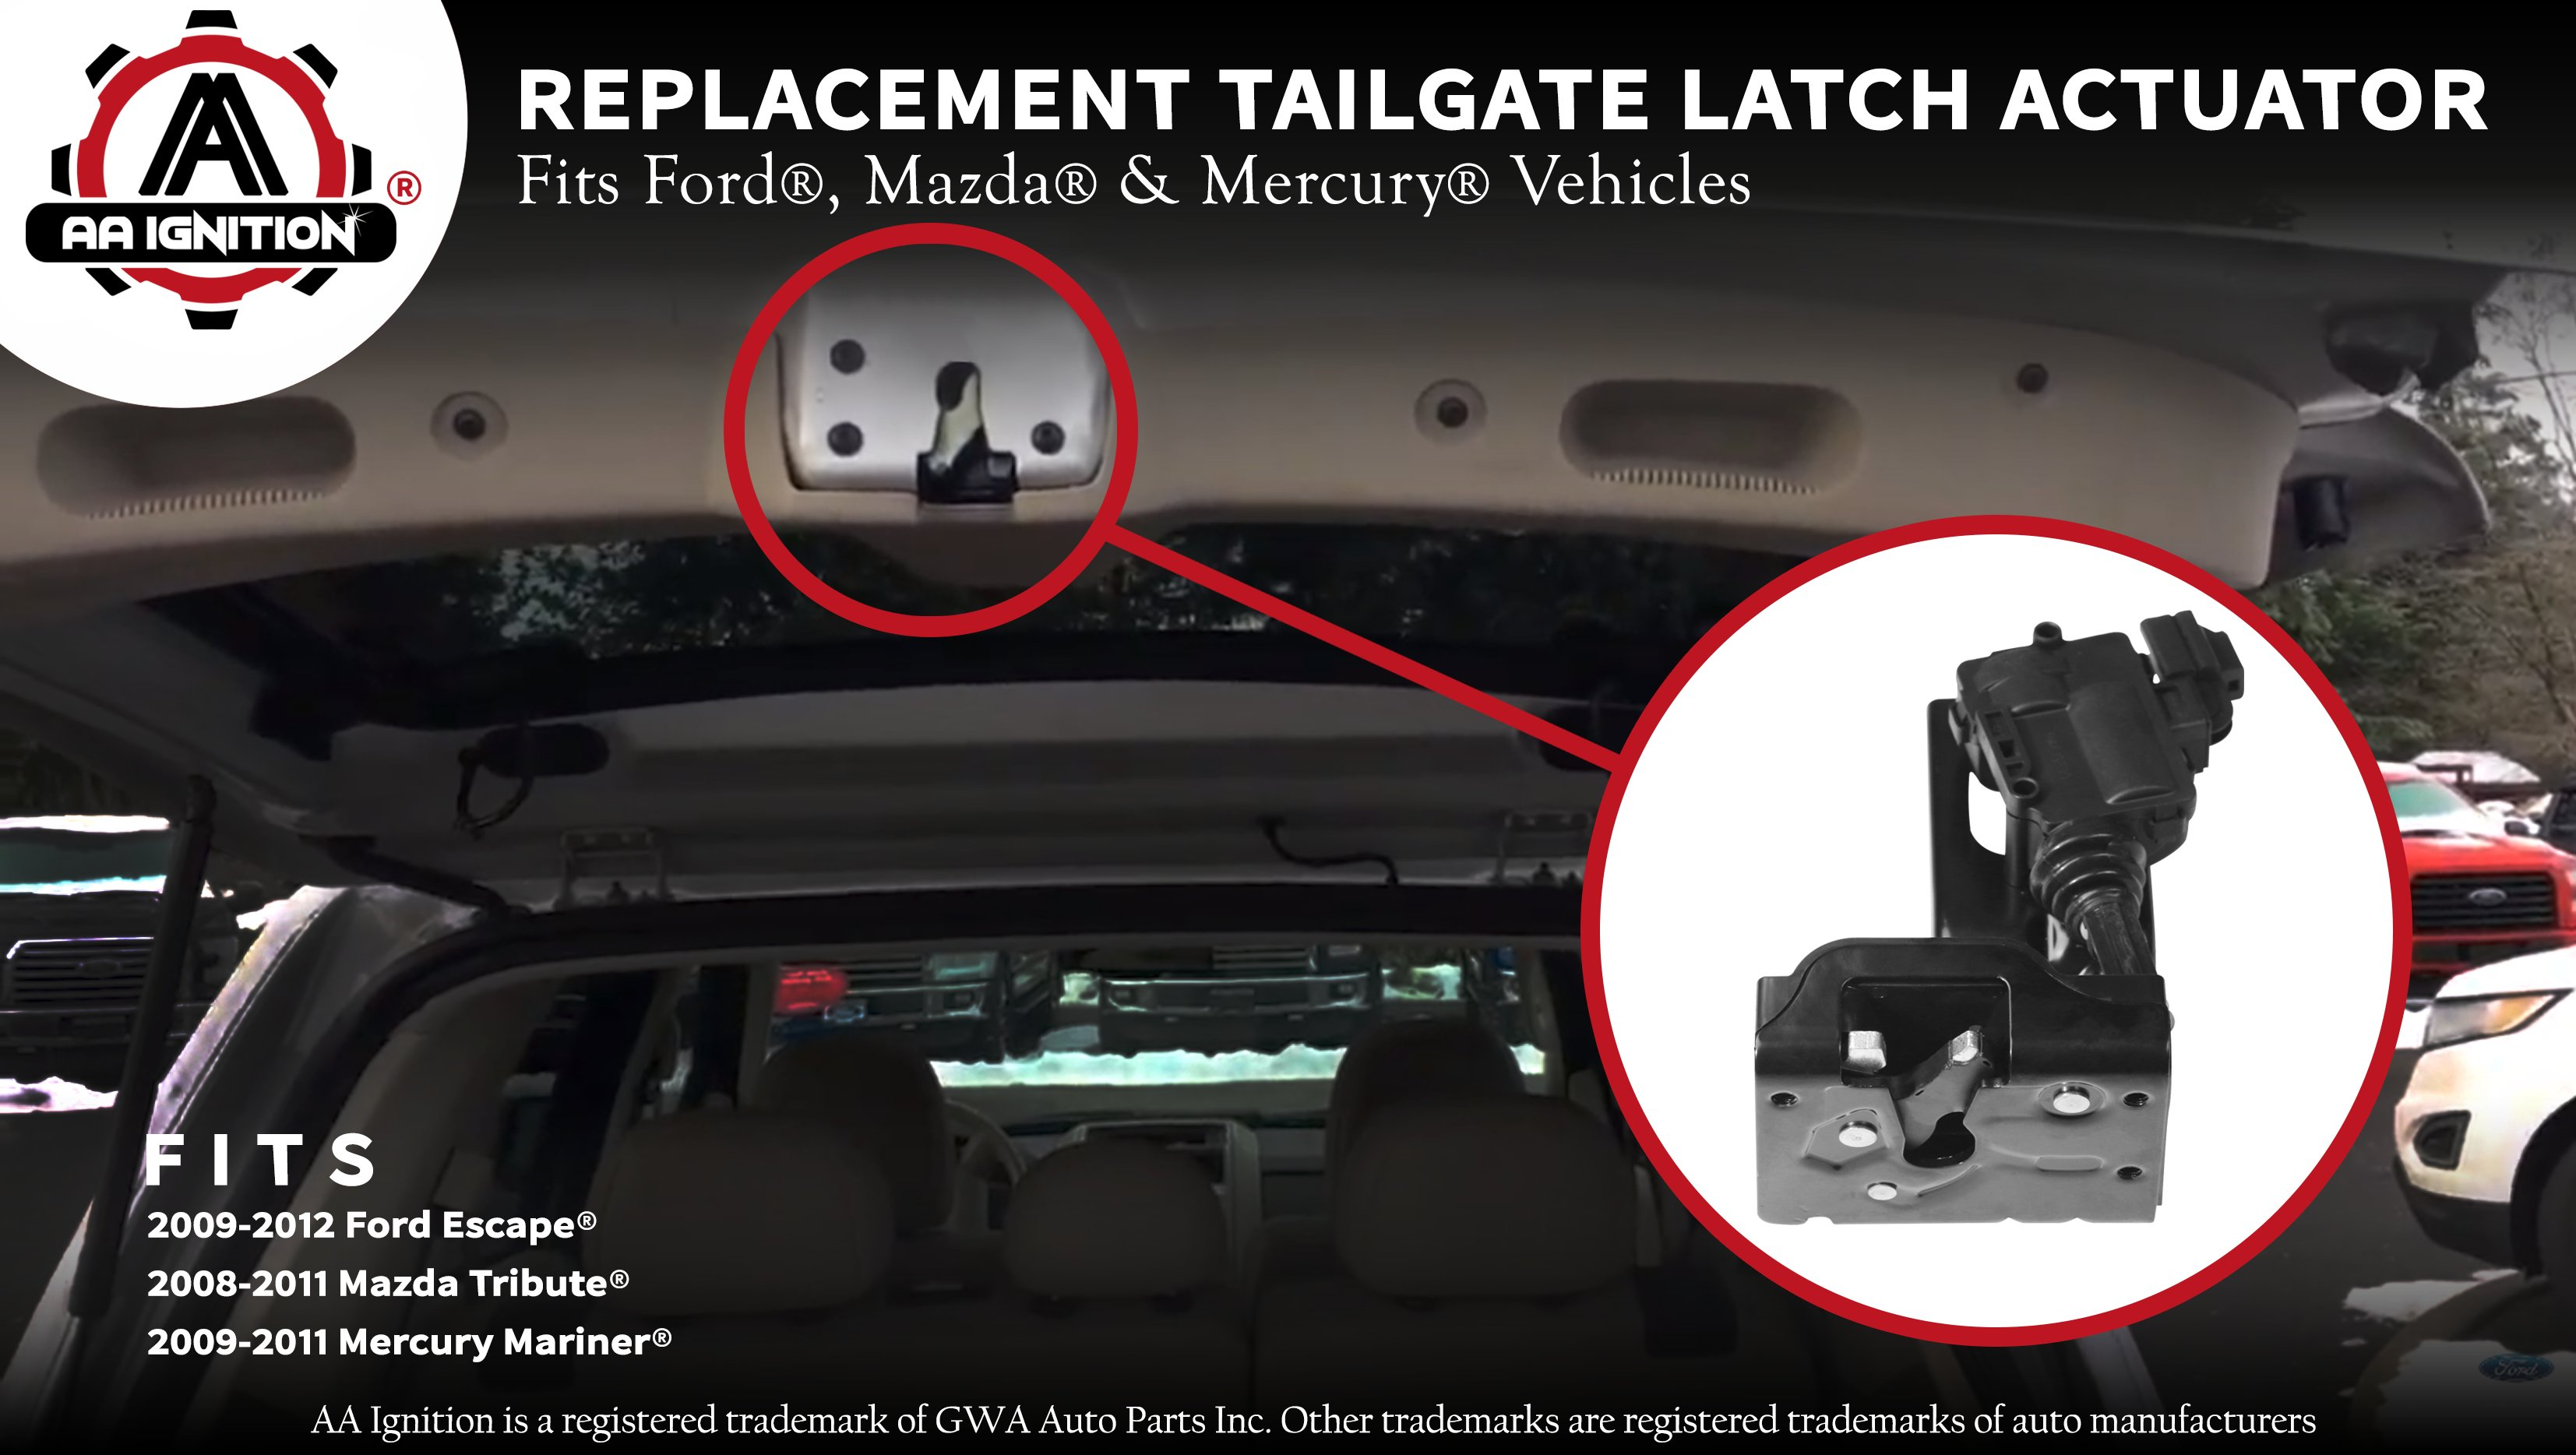 SMLTH Quality Саdillас Chevrolt GМС Rear LIFTGATE Latch Release Switch New OEM 15106857